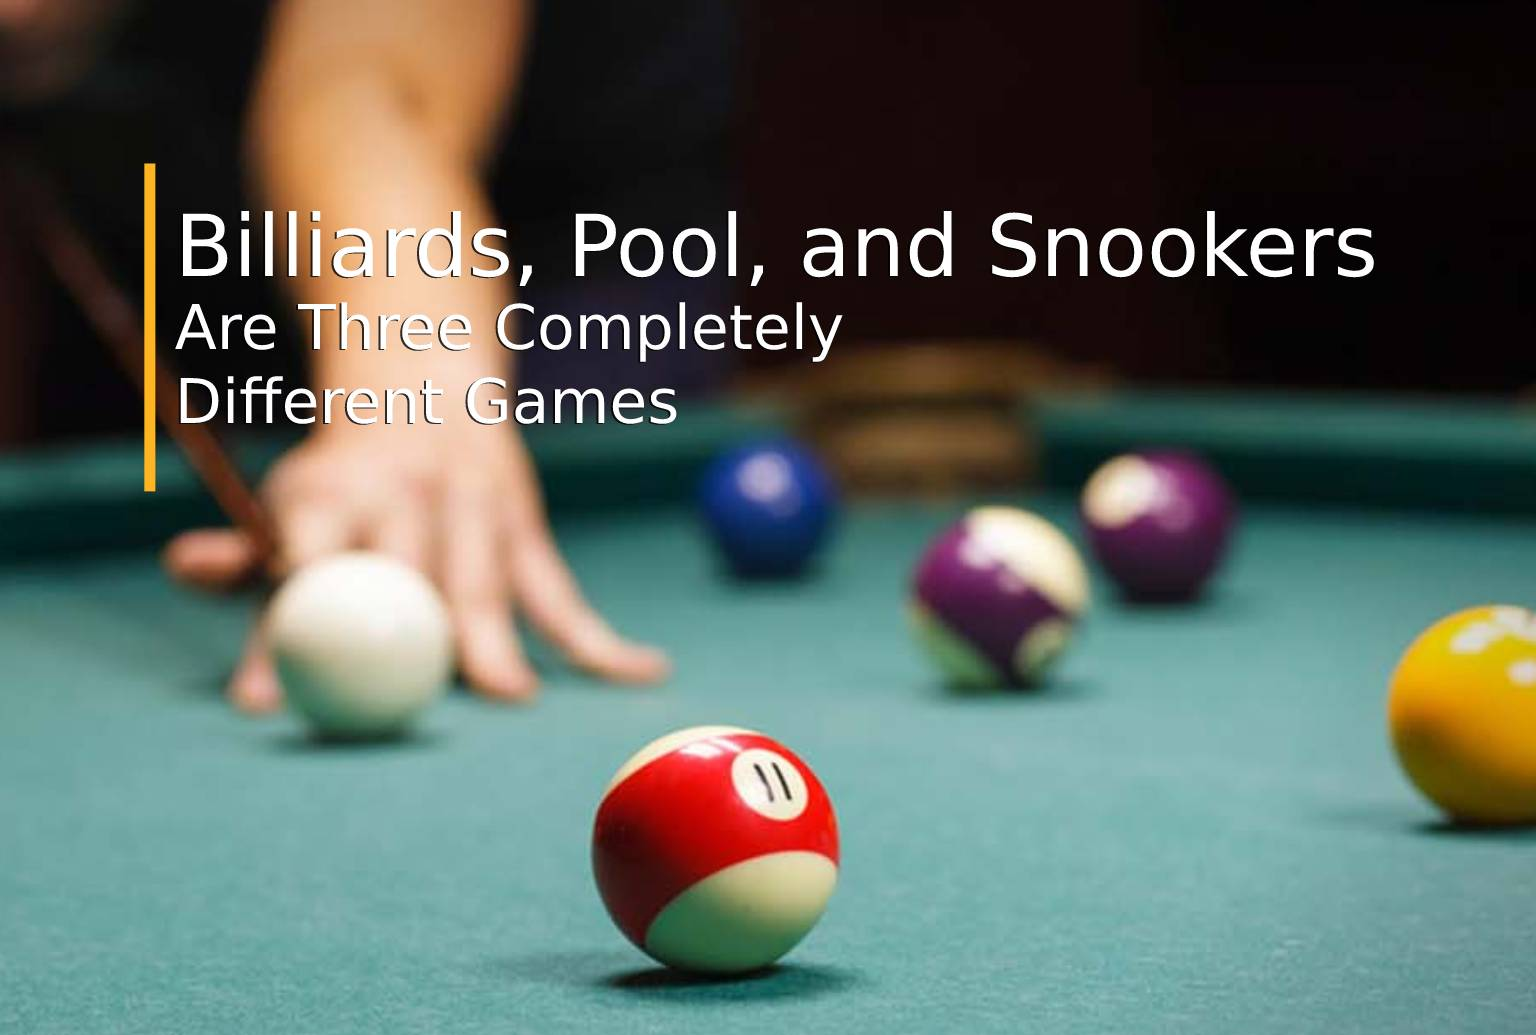 Differences Between Billiards Pool and Snooker